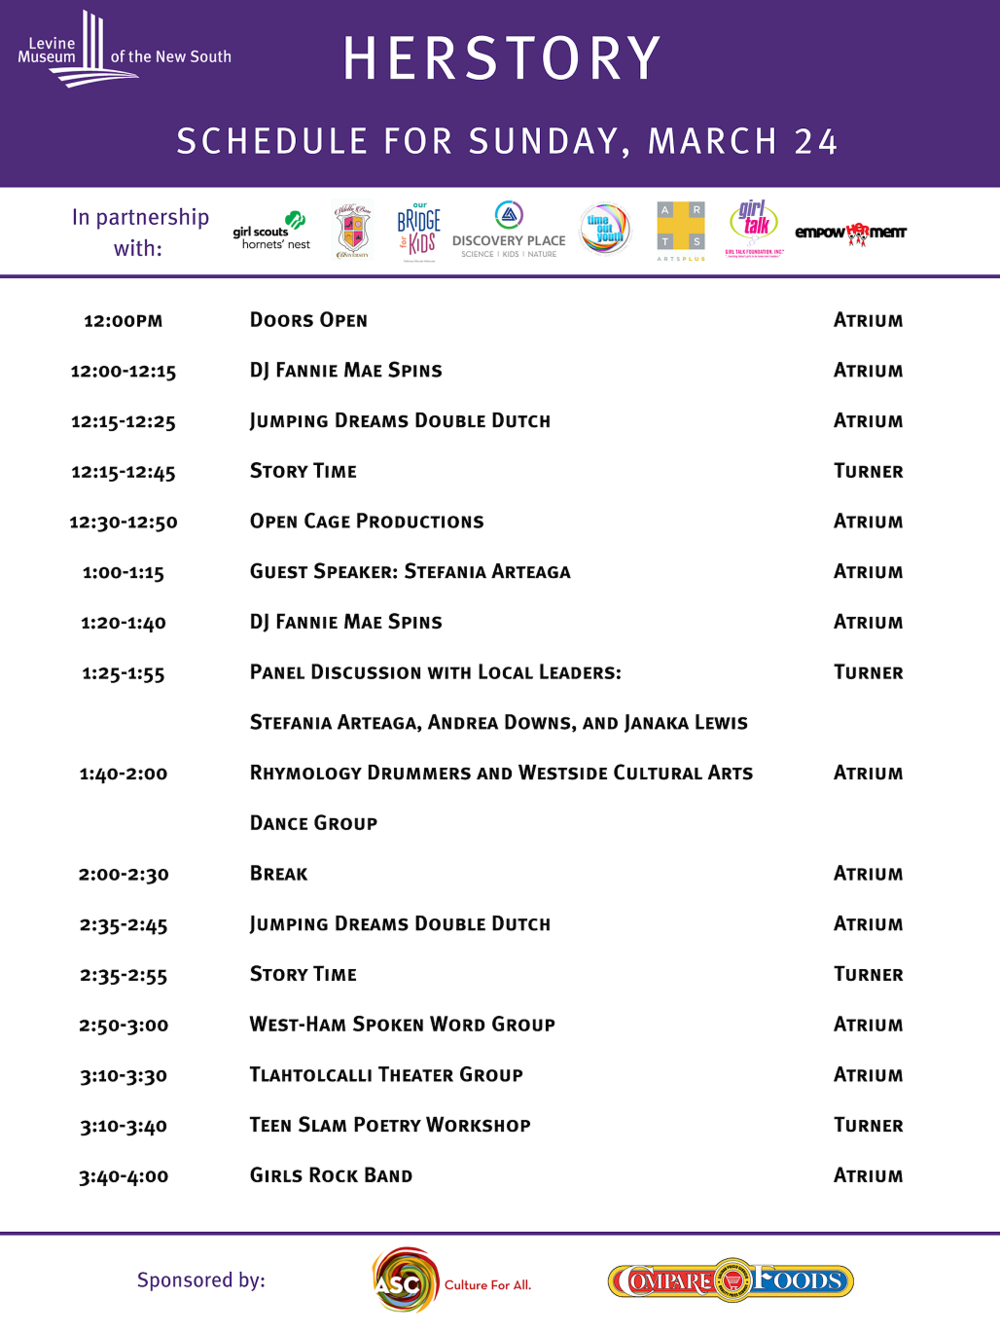 HERstory schedule.png